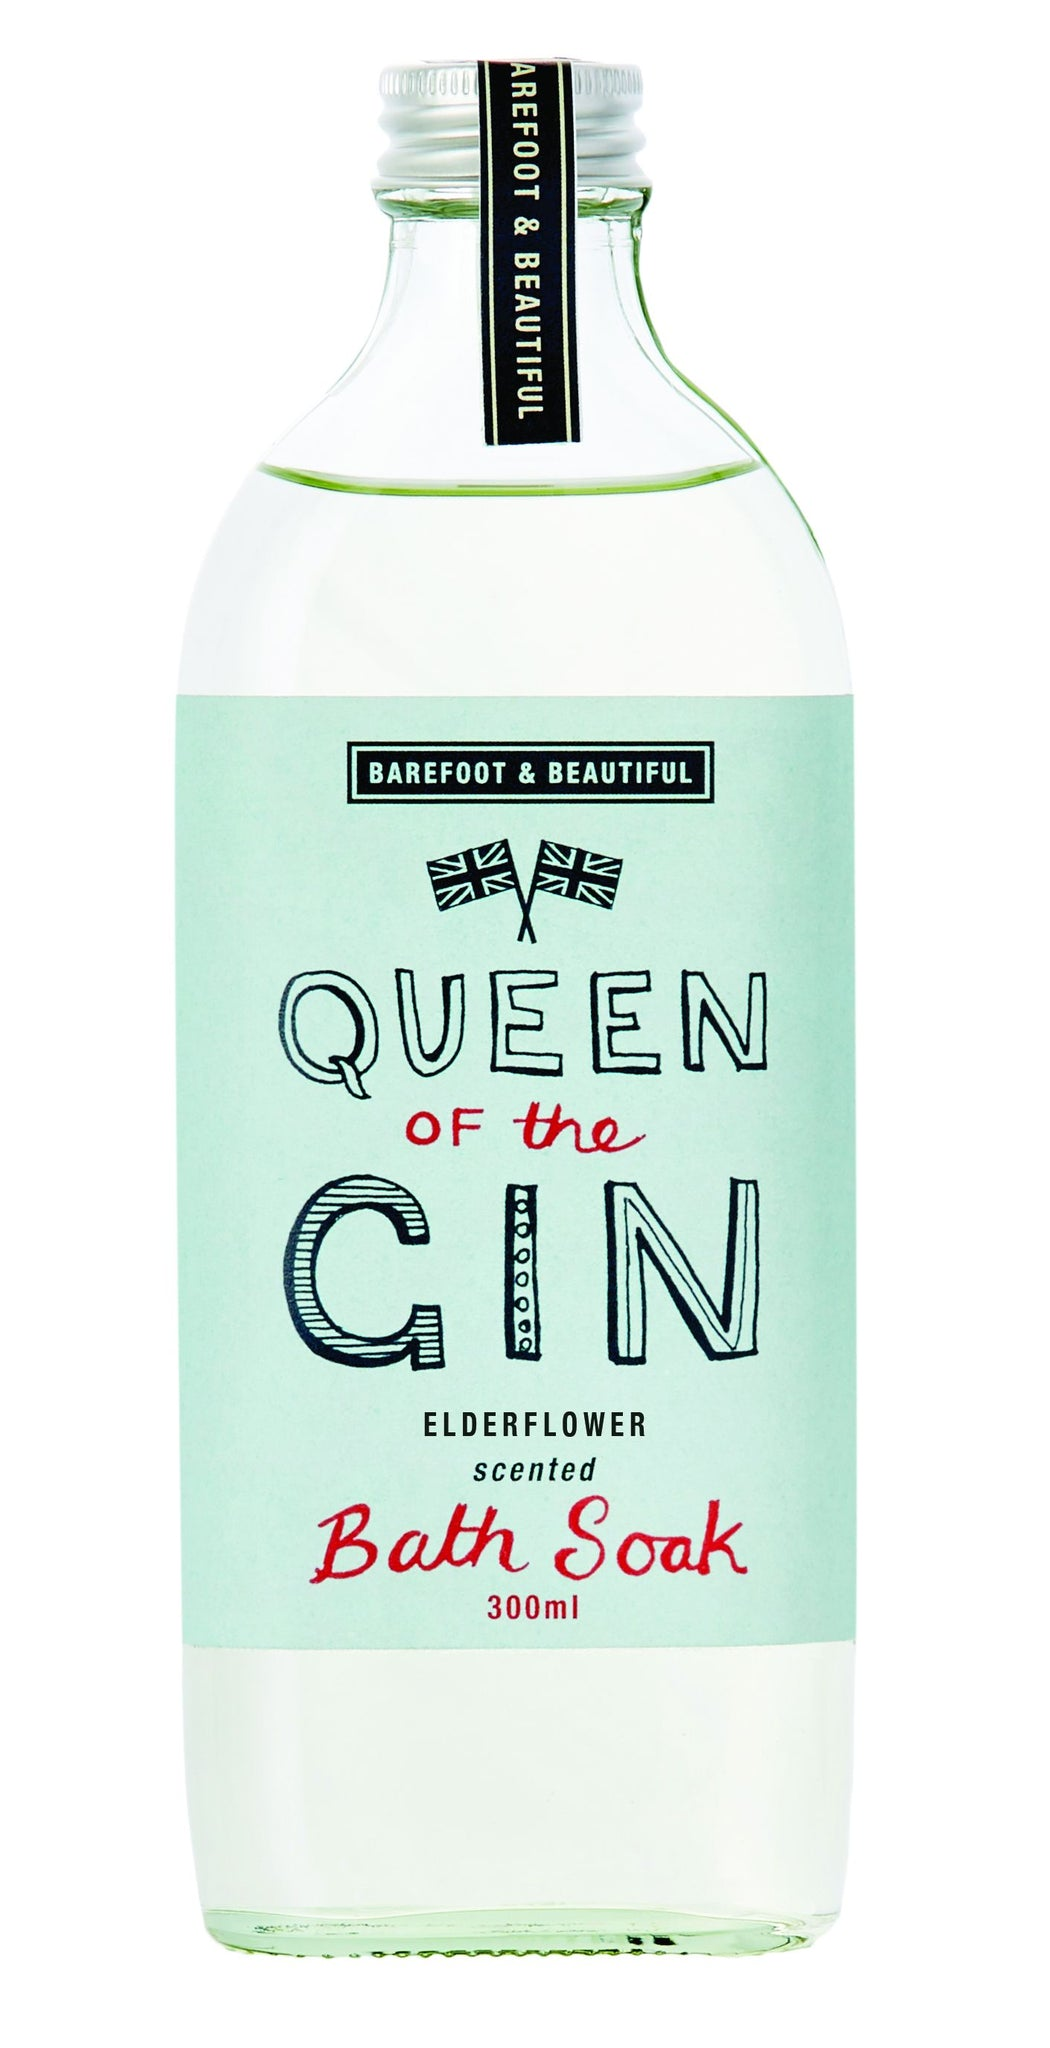 Queen of the Gin Bath Soak